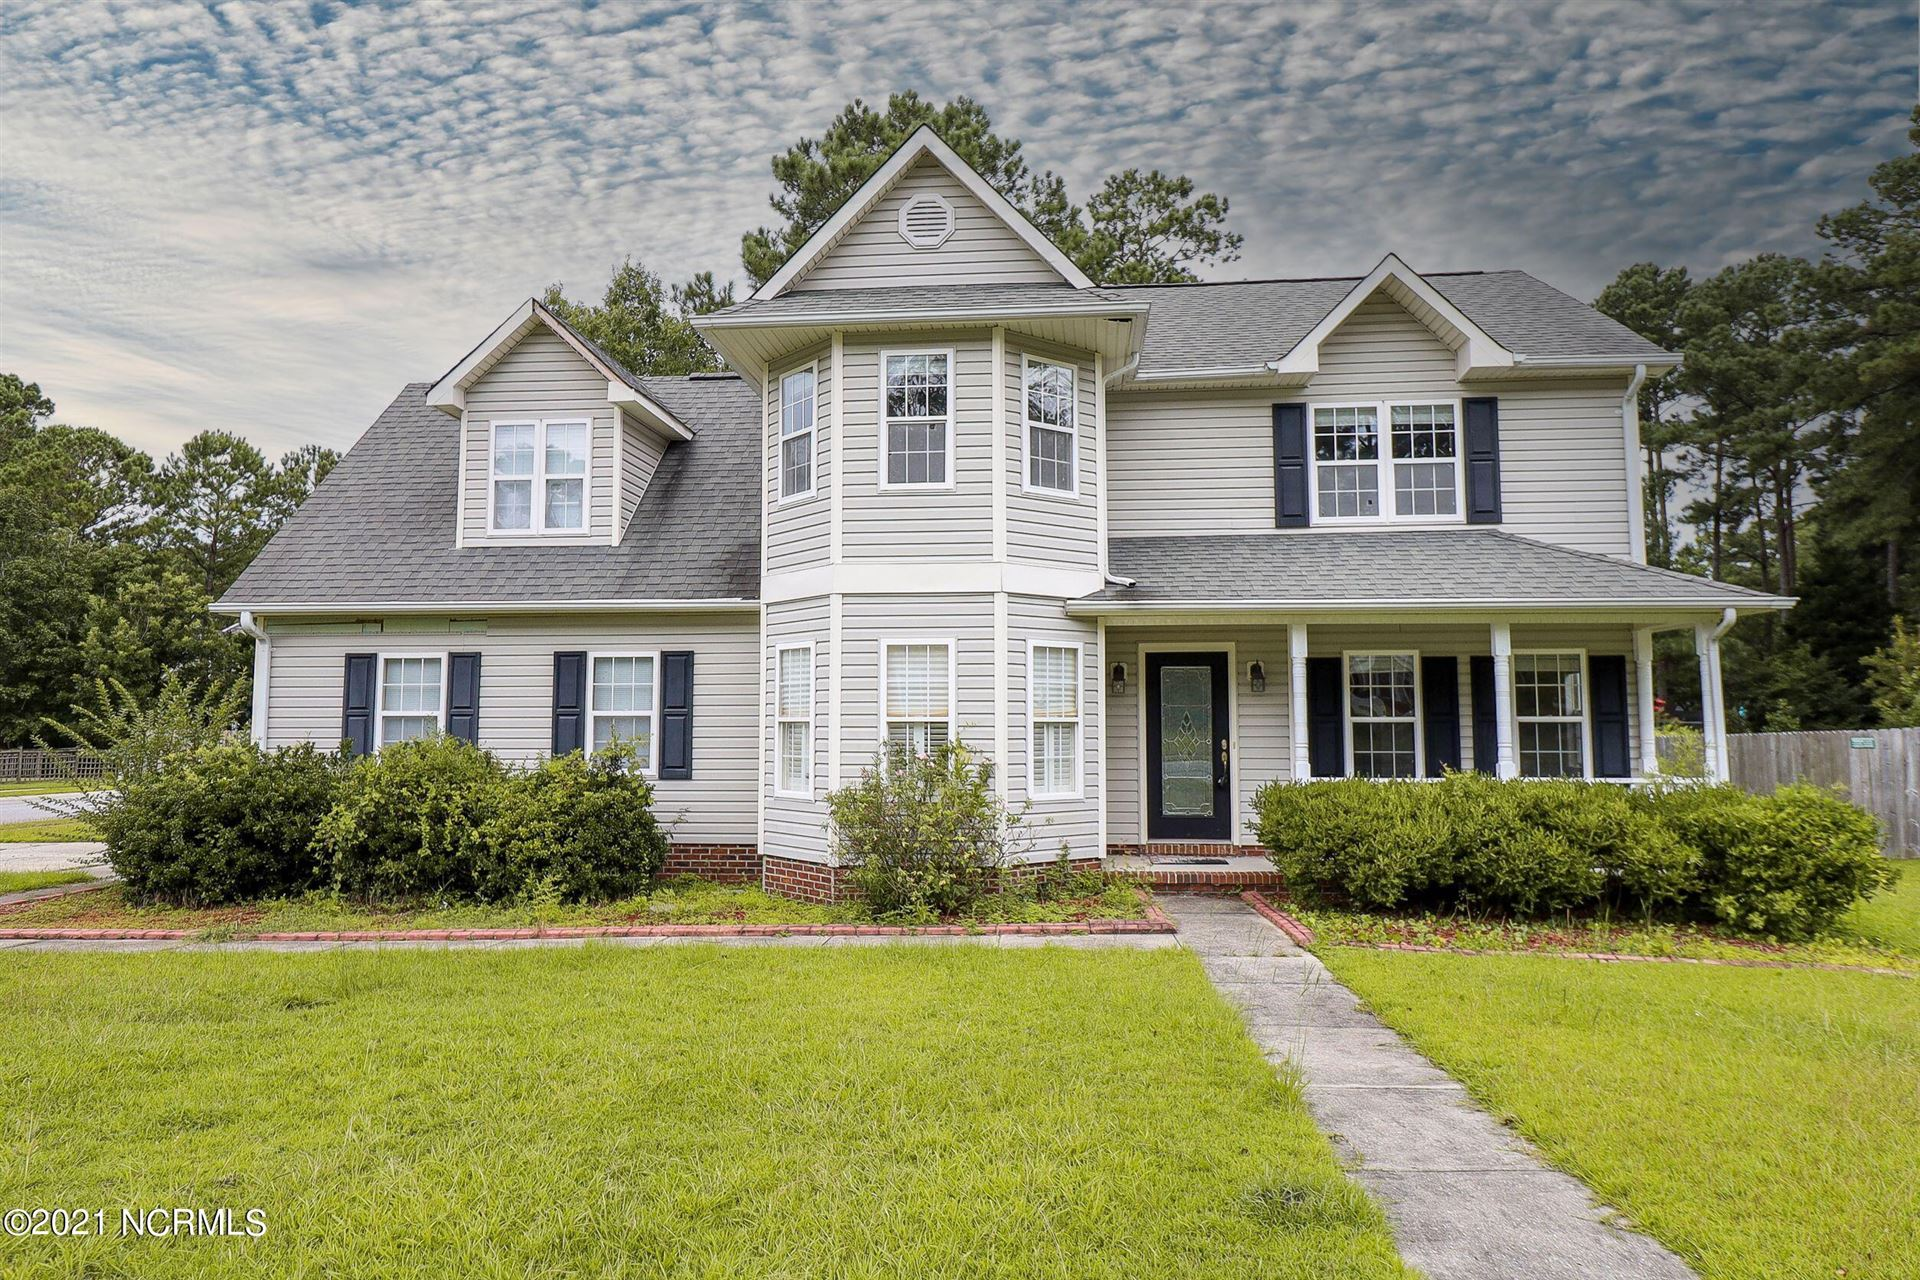 Photo of 98 Archdale Drive, Jacksonville, NC 28546 (MLS # 100287192)